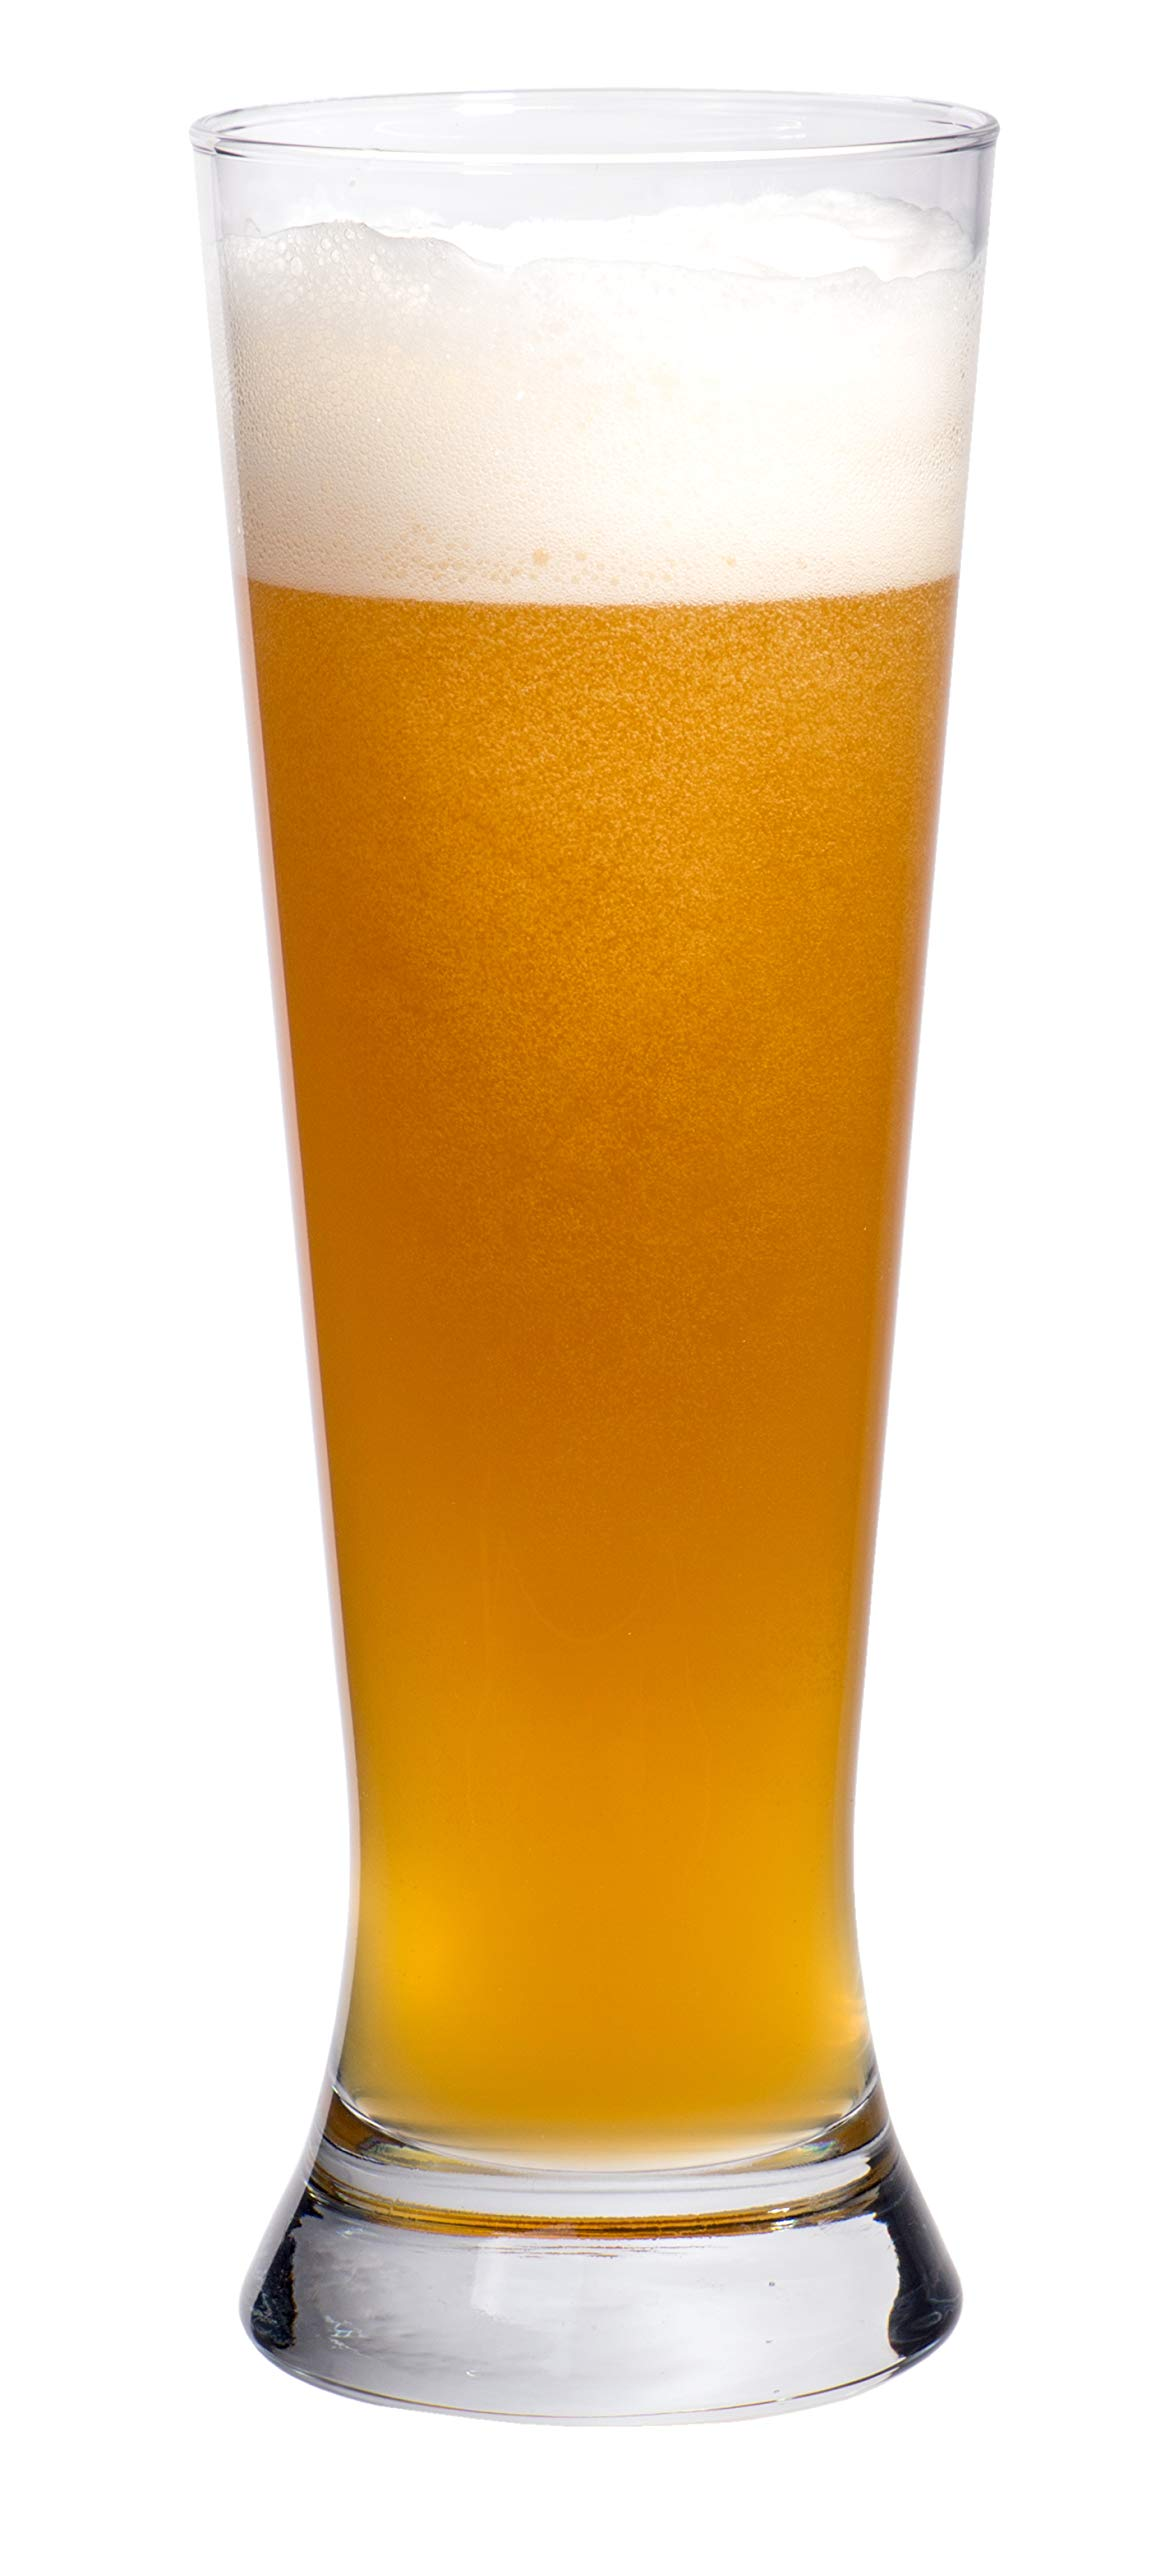 Exclusive Craft Brew Wheat Beer Glasses, 20oz - Set of 6